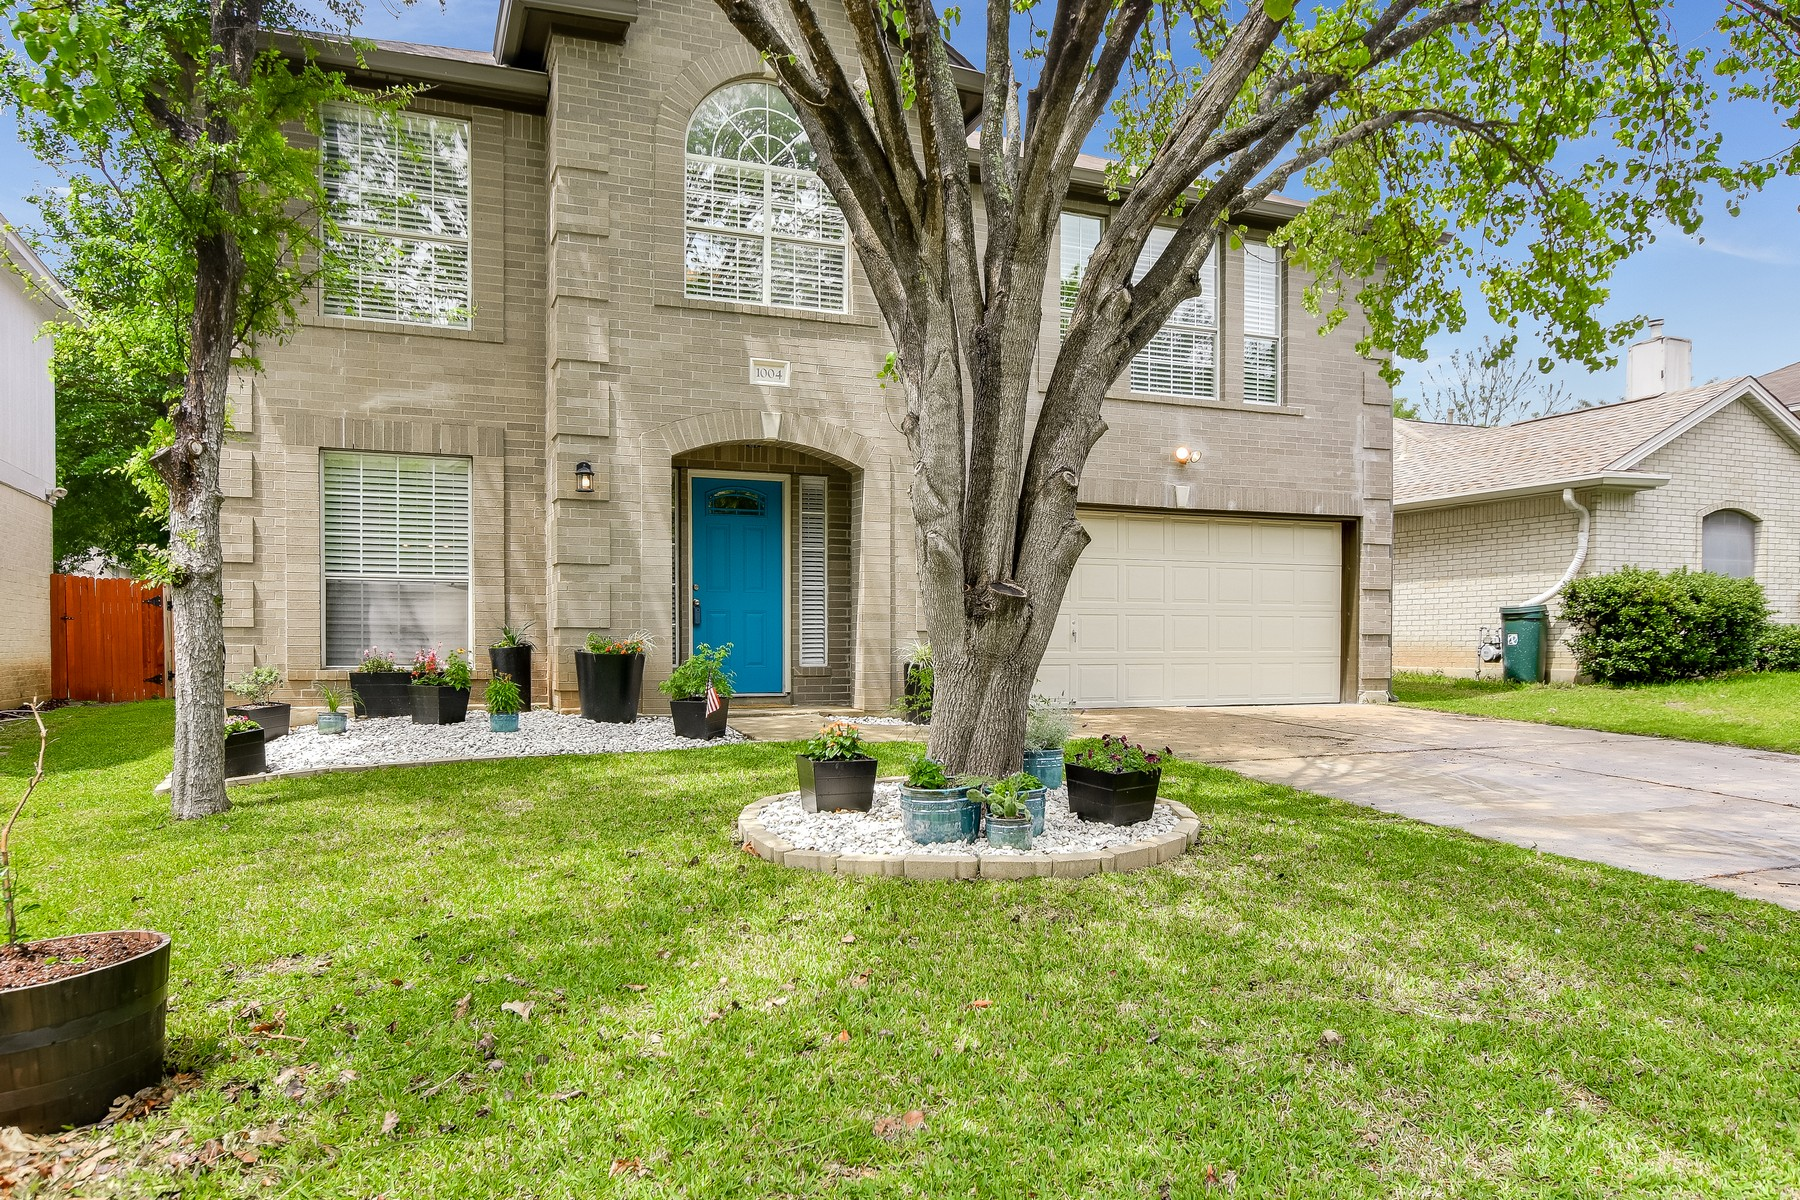 Single Family Home for Sale at Beautifully Pflugerville Updated Home 1004 Acanthus St Pflugerville, Texas 78660 United States